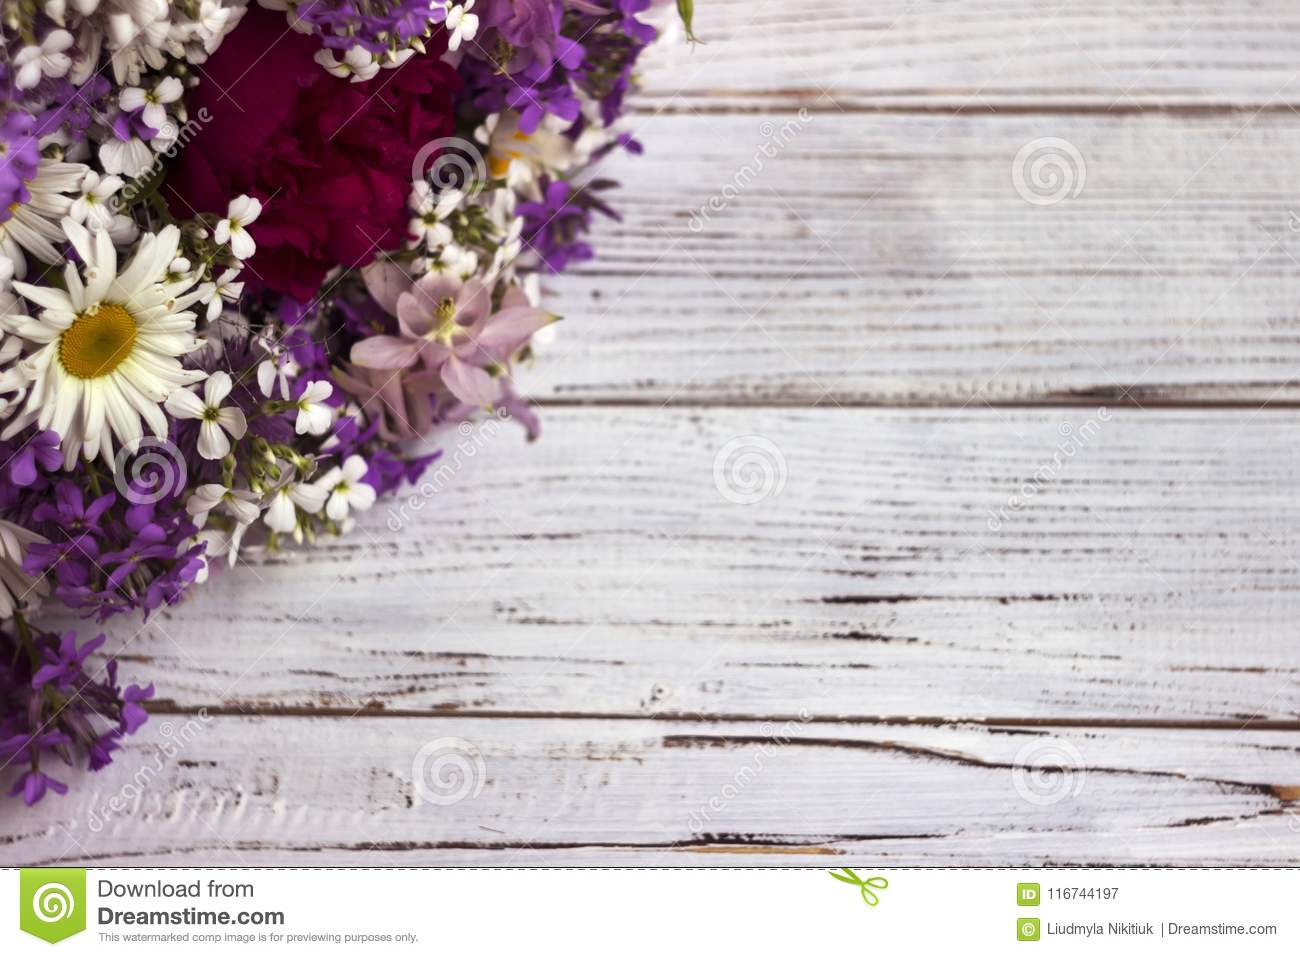 Many Different Types Of Flowers Purple And Violet Phlox White